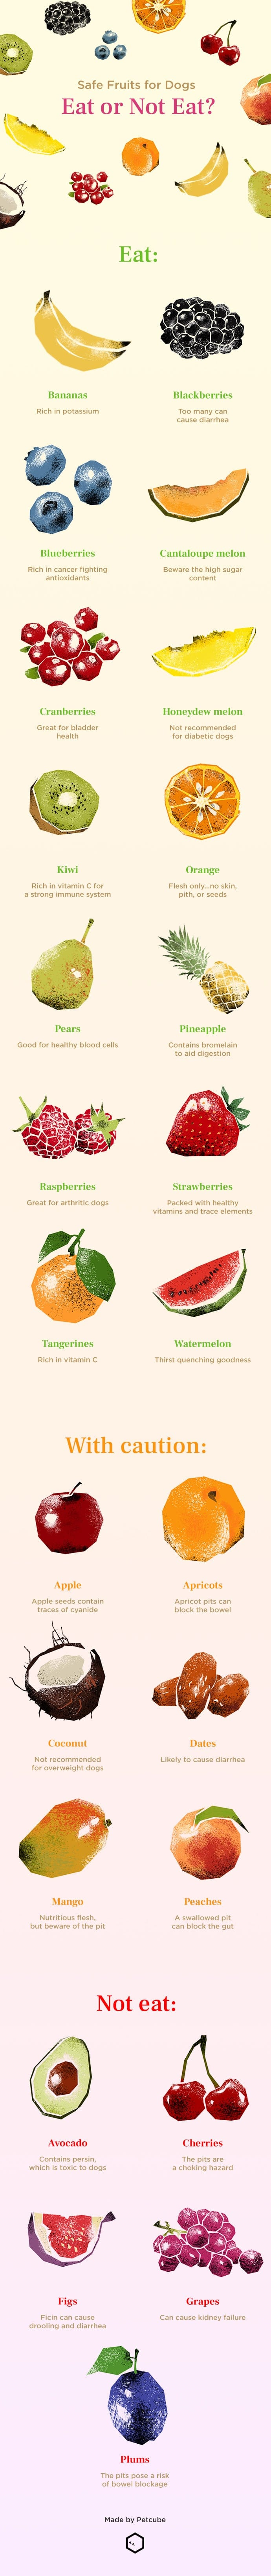 Which Fruits Are Safe For Dogs To Eat